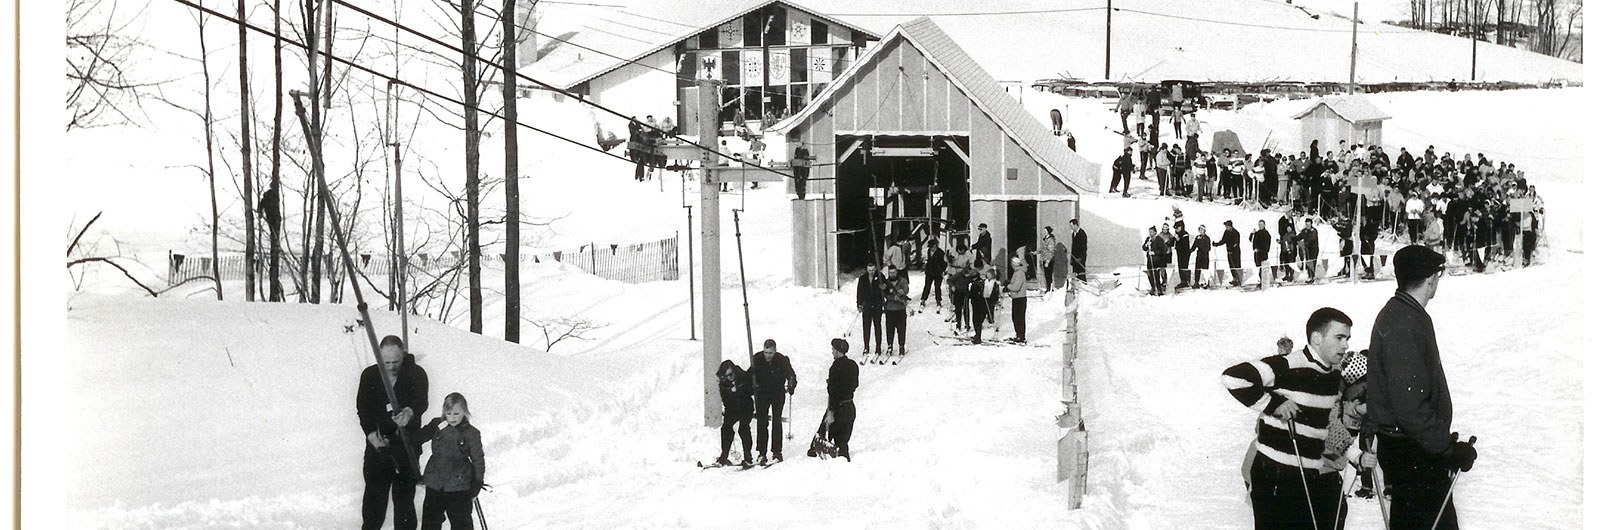 historical photo of Tannenbaum TBar and Warming Hut